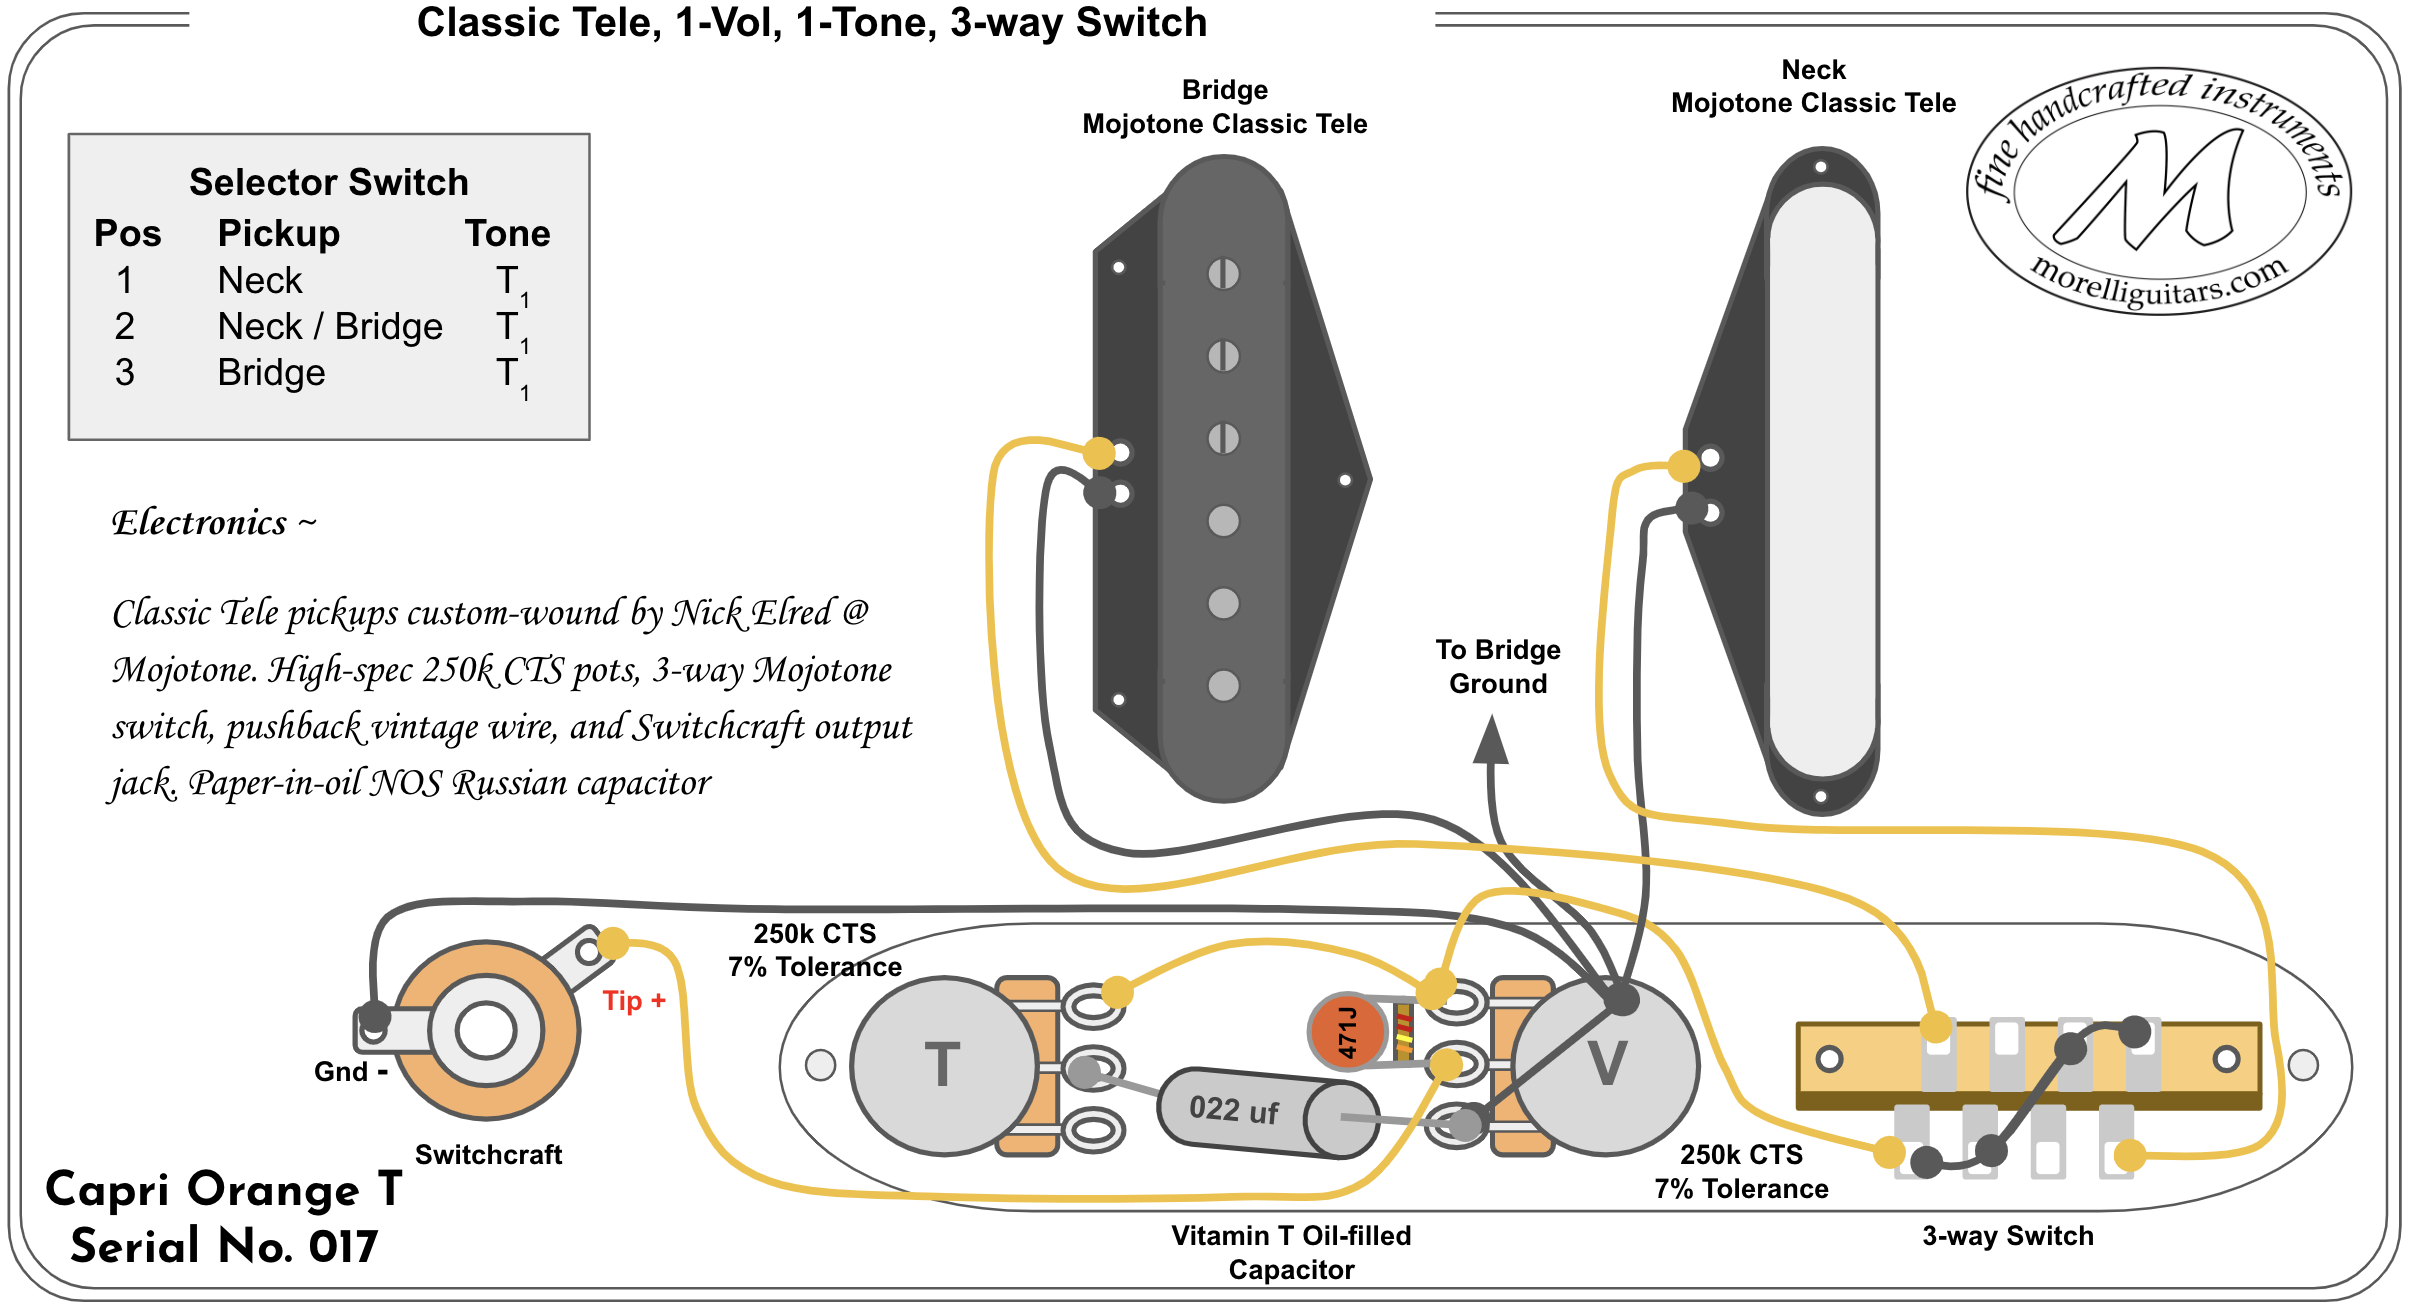 59 Telecaster Wiring Diagram 3 Way from morelliguitars.com